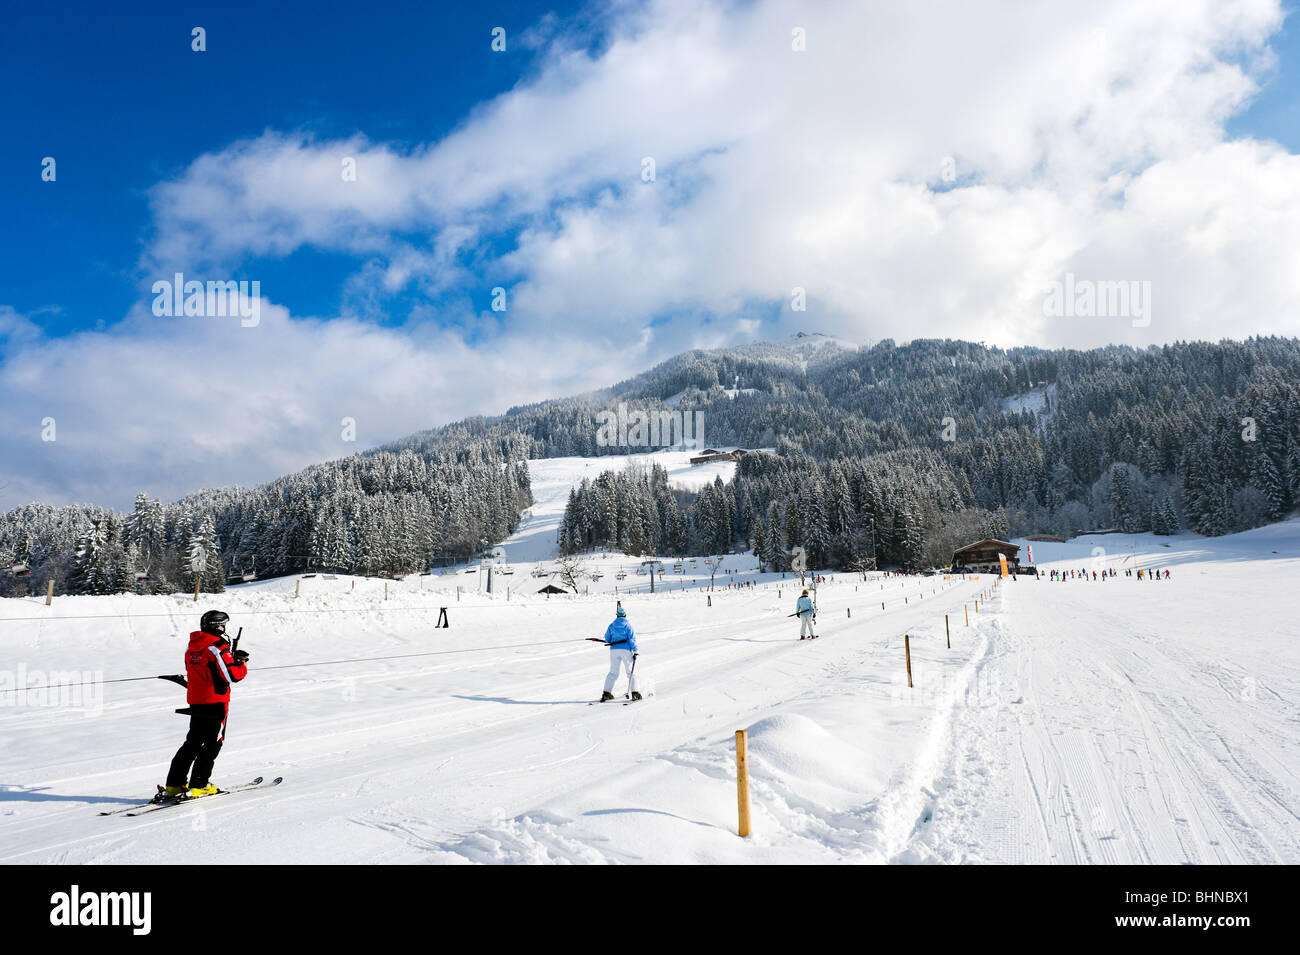 Drag lift on the nursery slopes just outside the resort centre, Westendorf, Tyrol, Austria - Stock Image